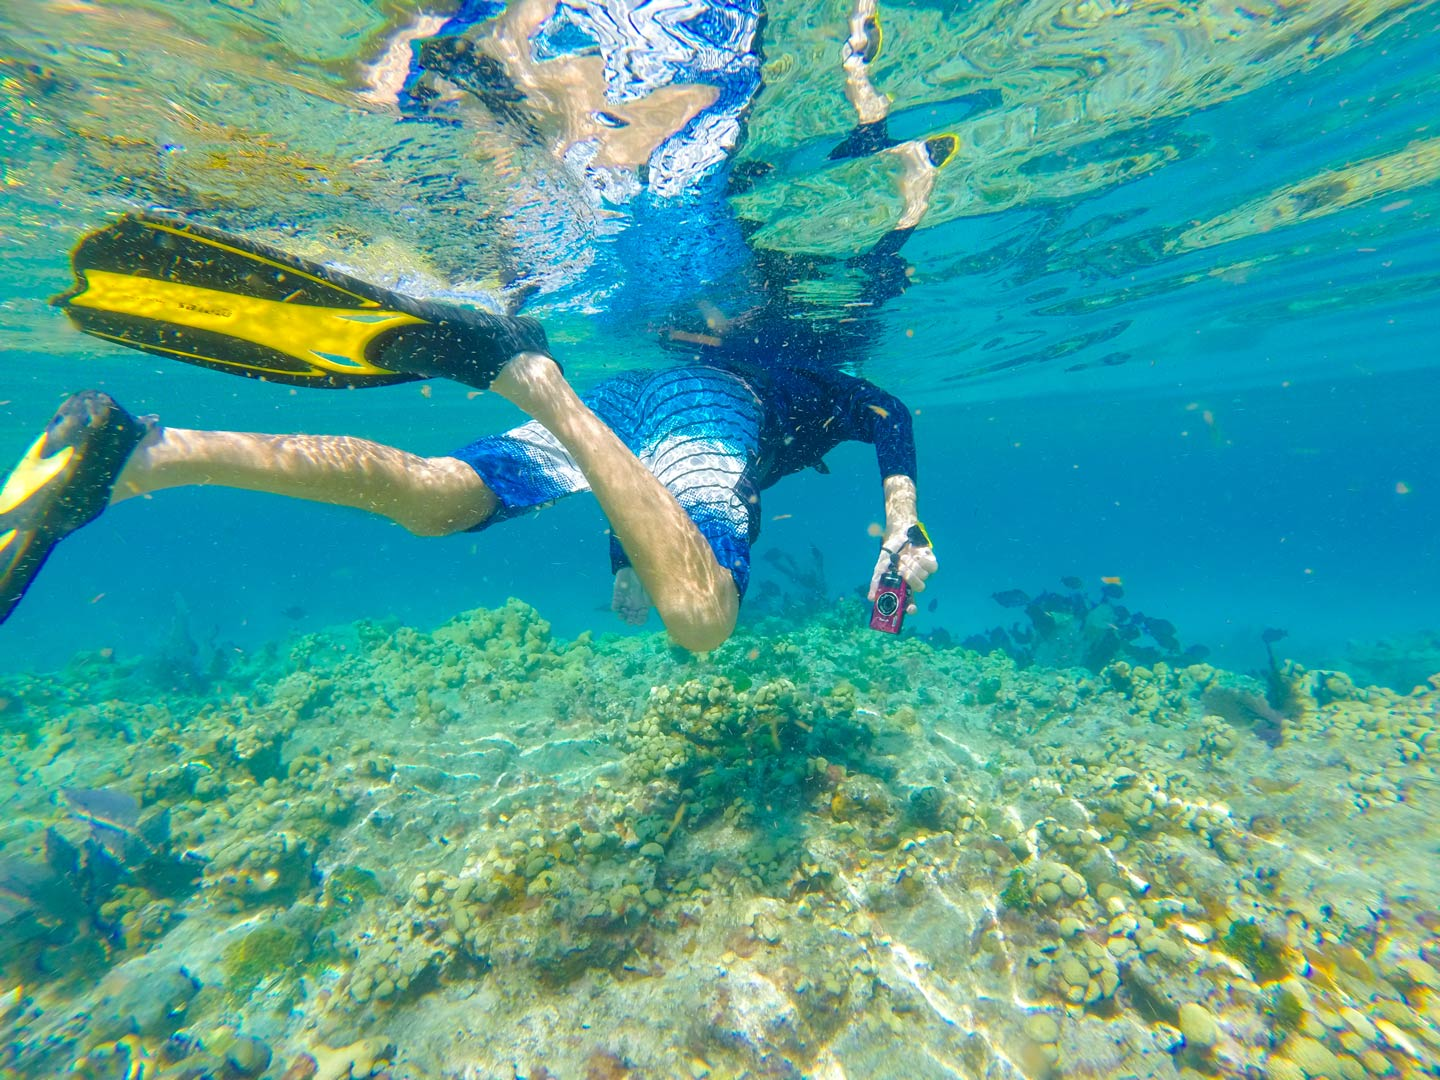 A man snorkeling in the reefs of Key Largo, Florida